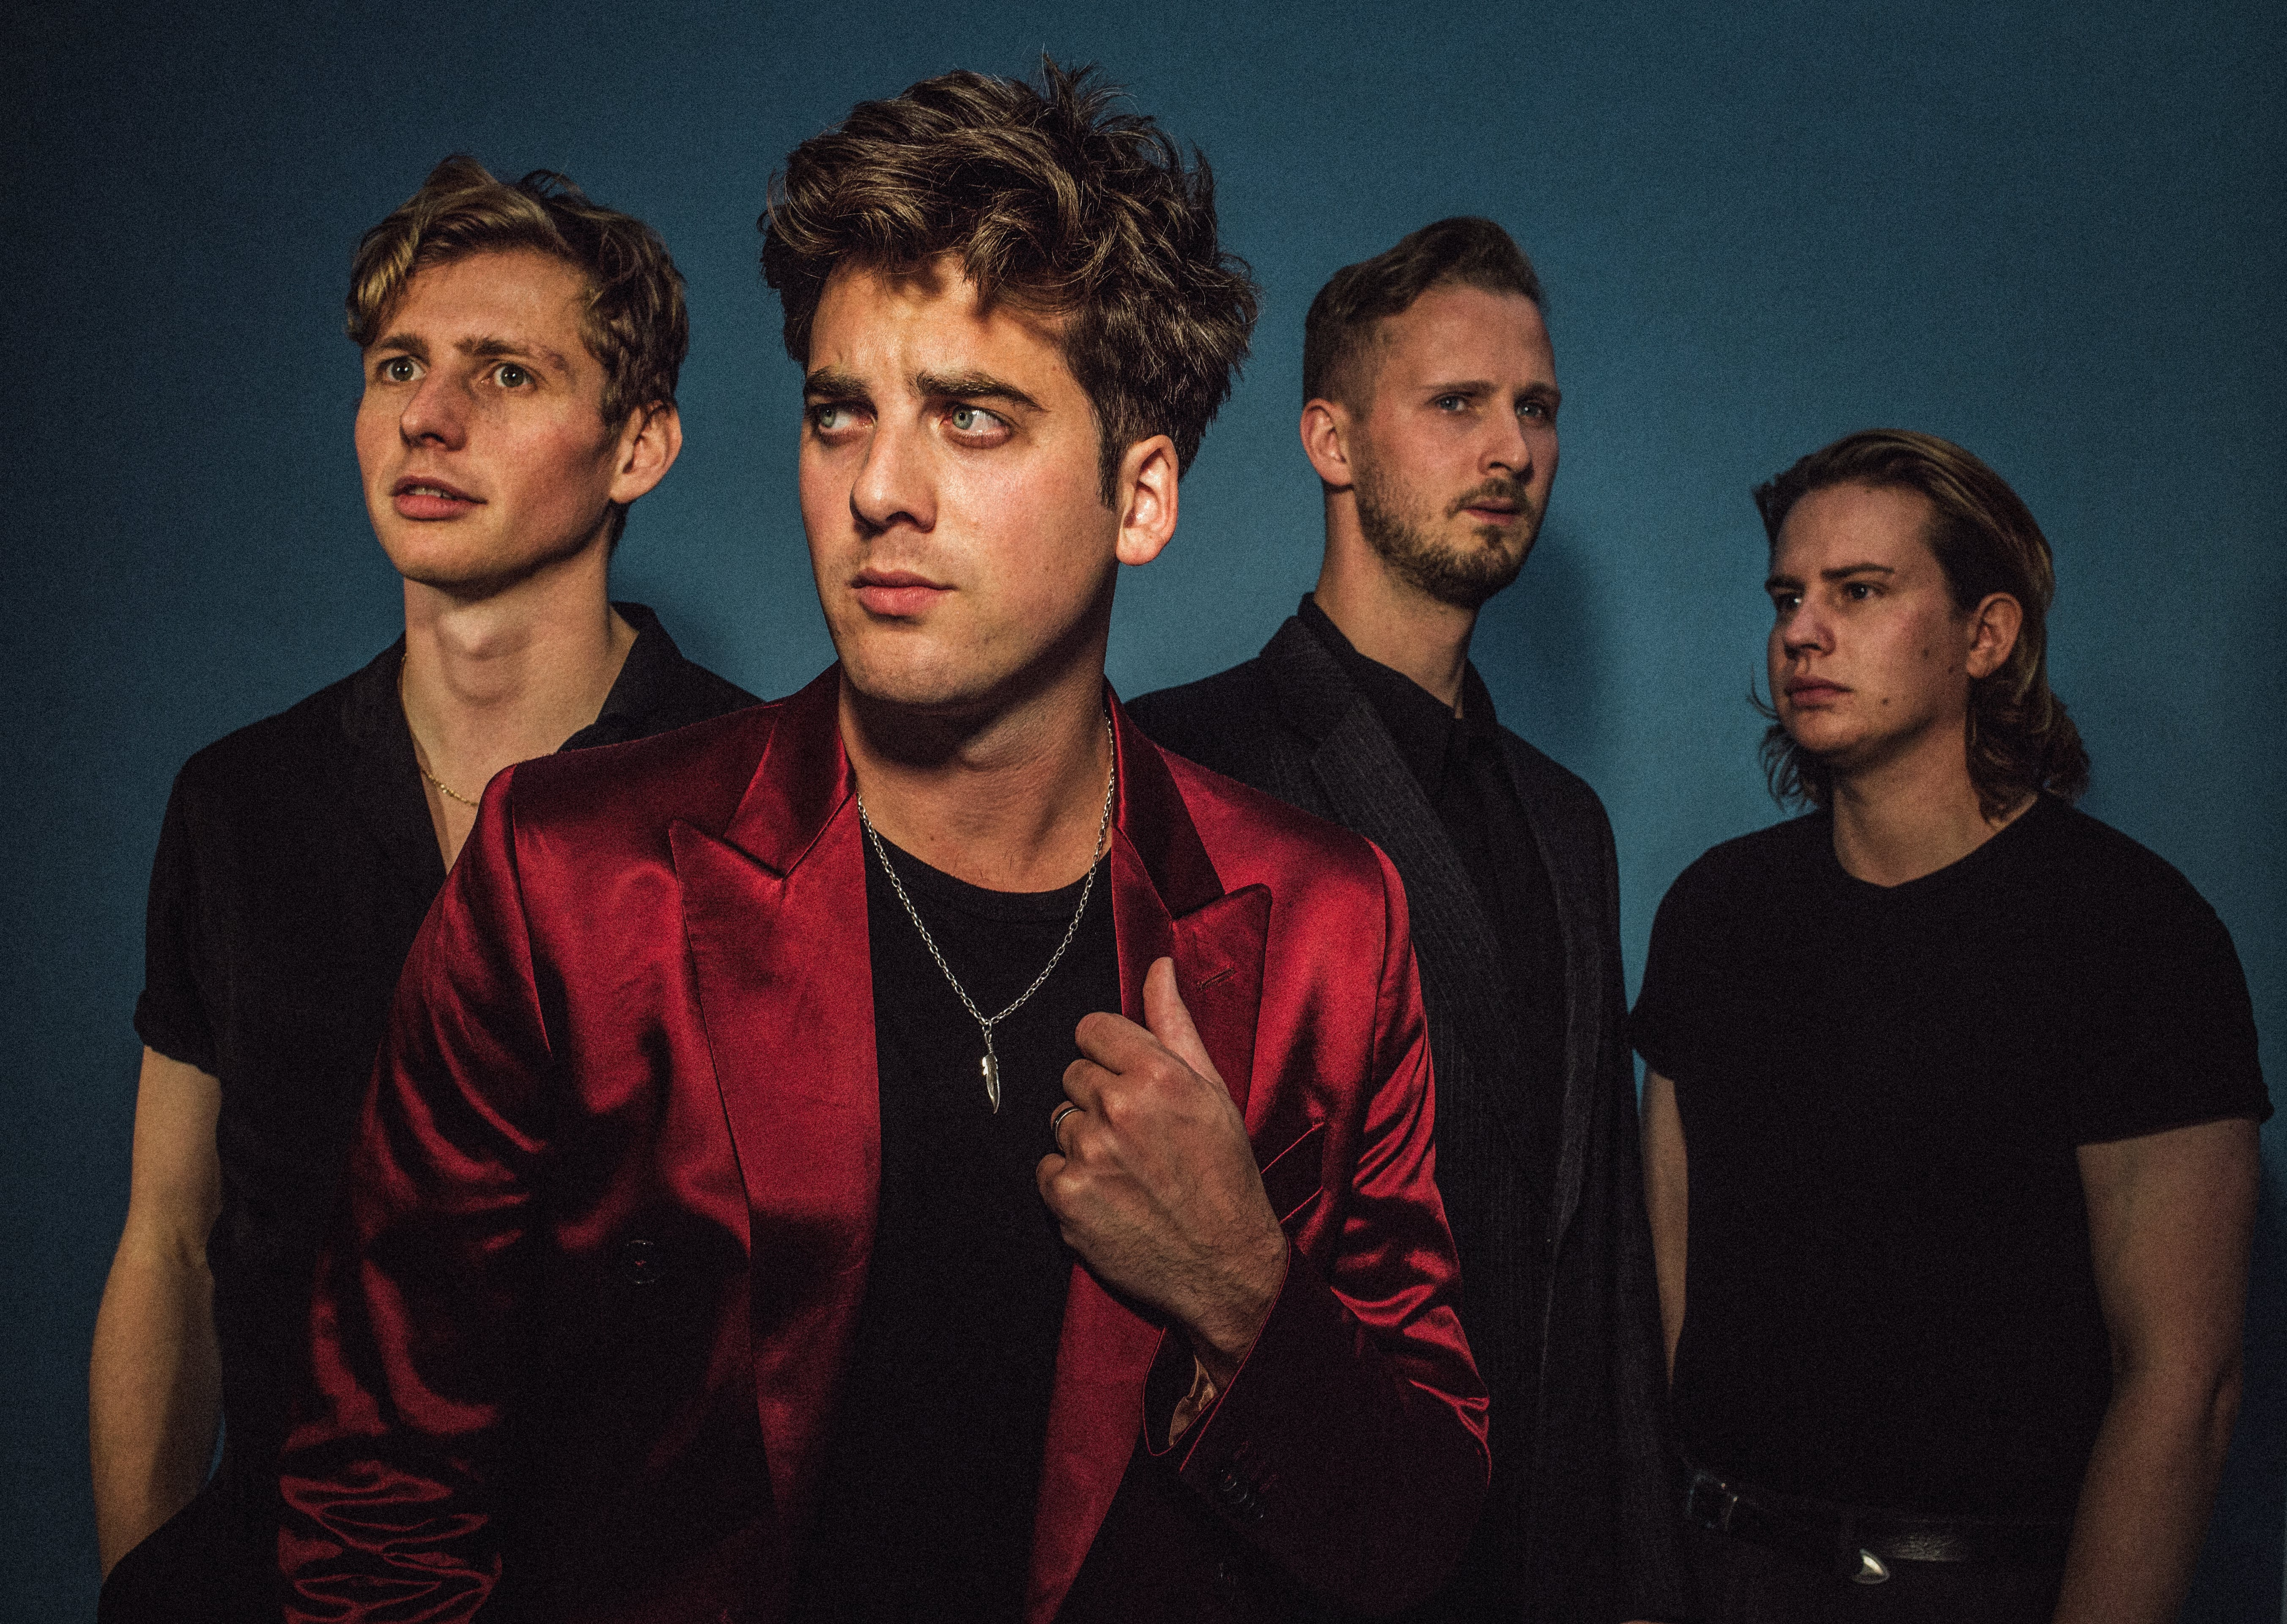 Interview: Circa Waves on Movies, 1960s Mustangs & Filming Music Videos